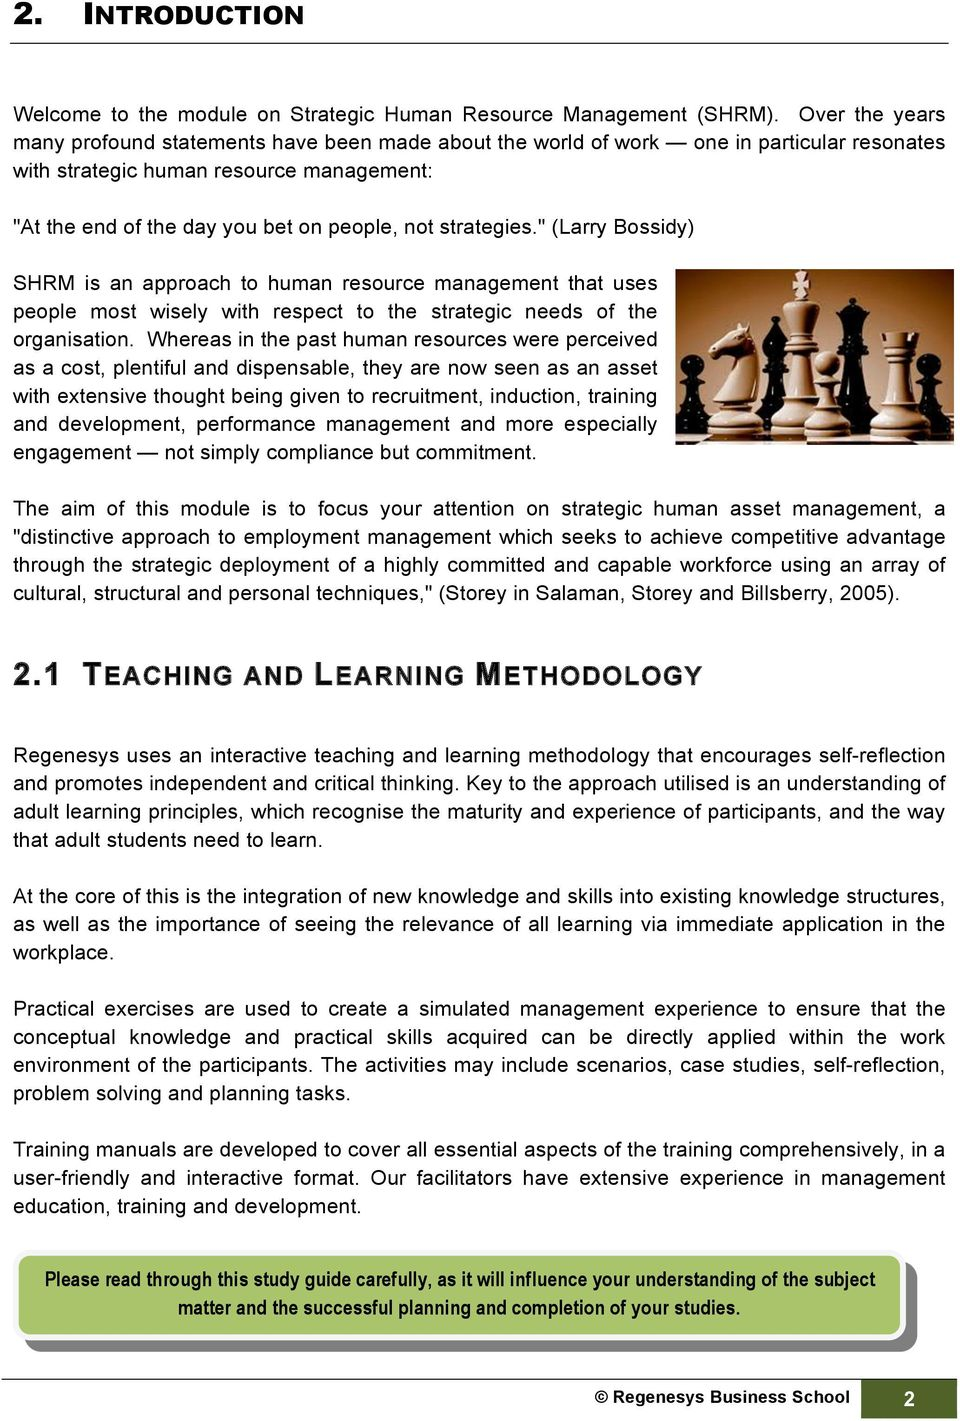 "strategies."" (Larry Bossidy) SHRM is an approach to human resource management that uses people most wisely with respect to the strategic needs of the organisation."